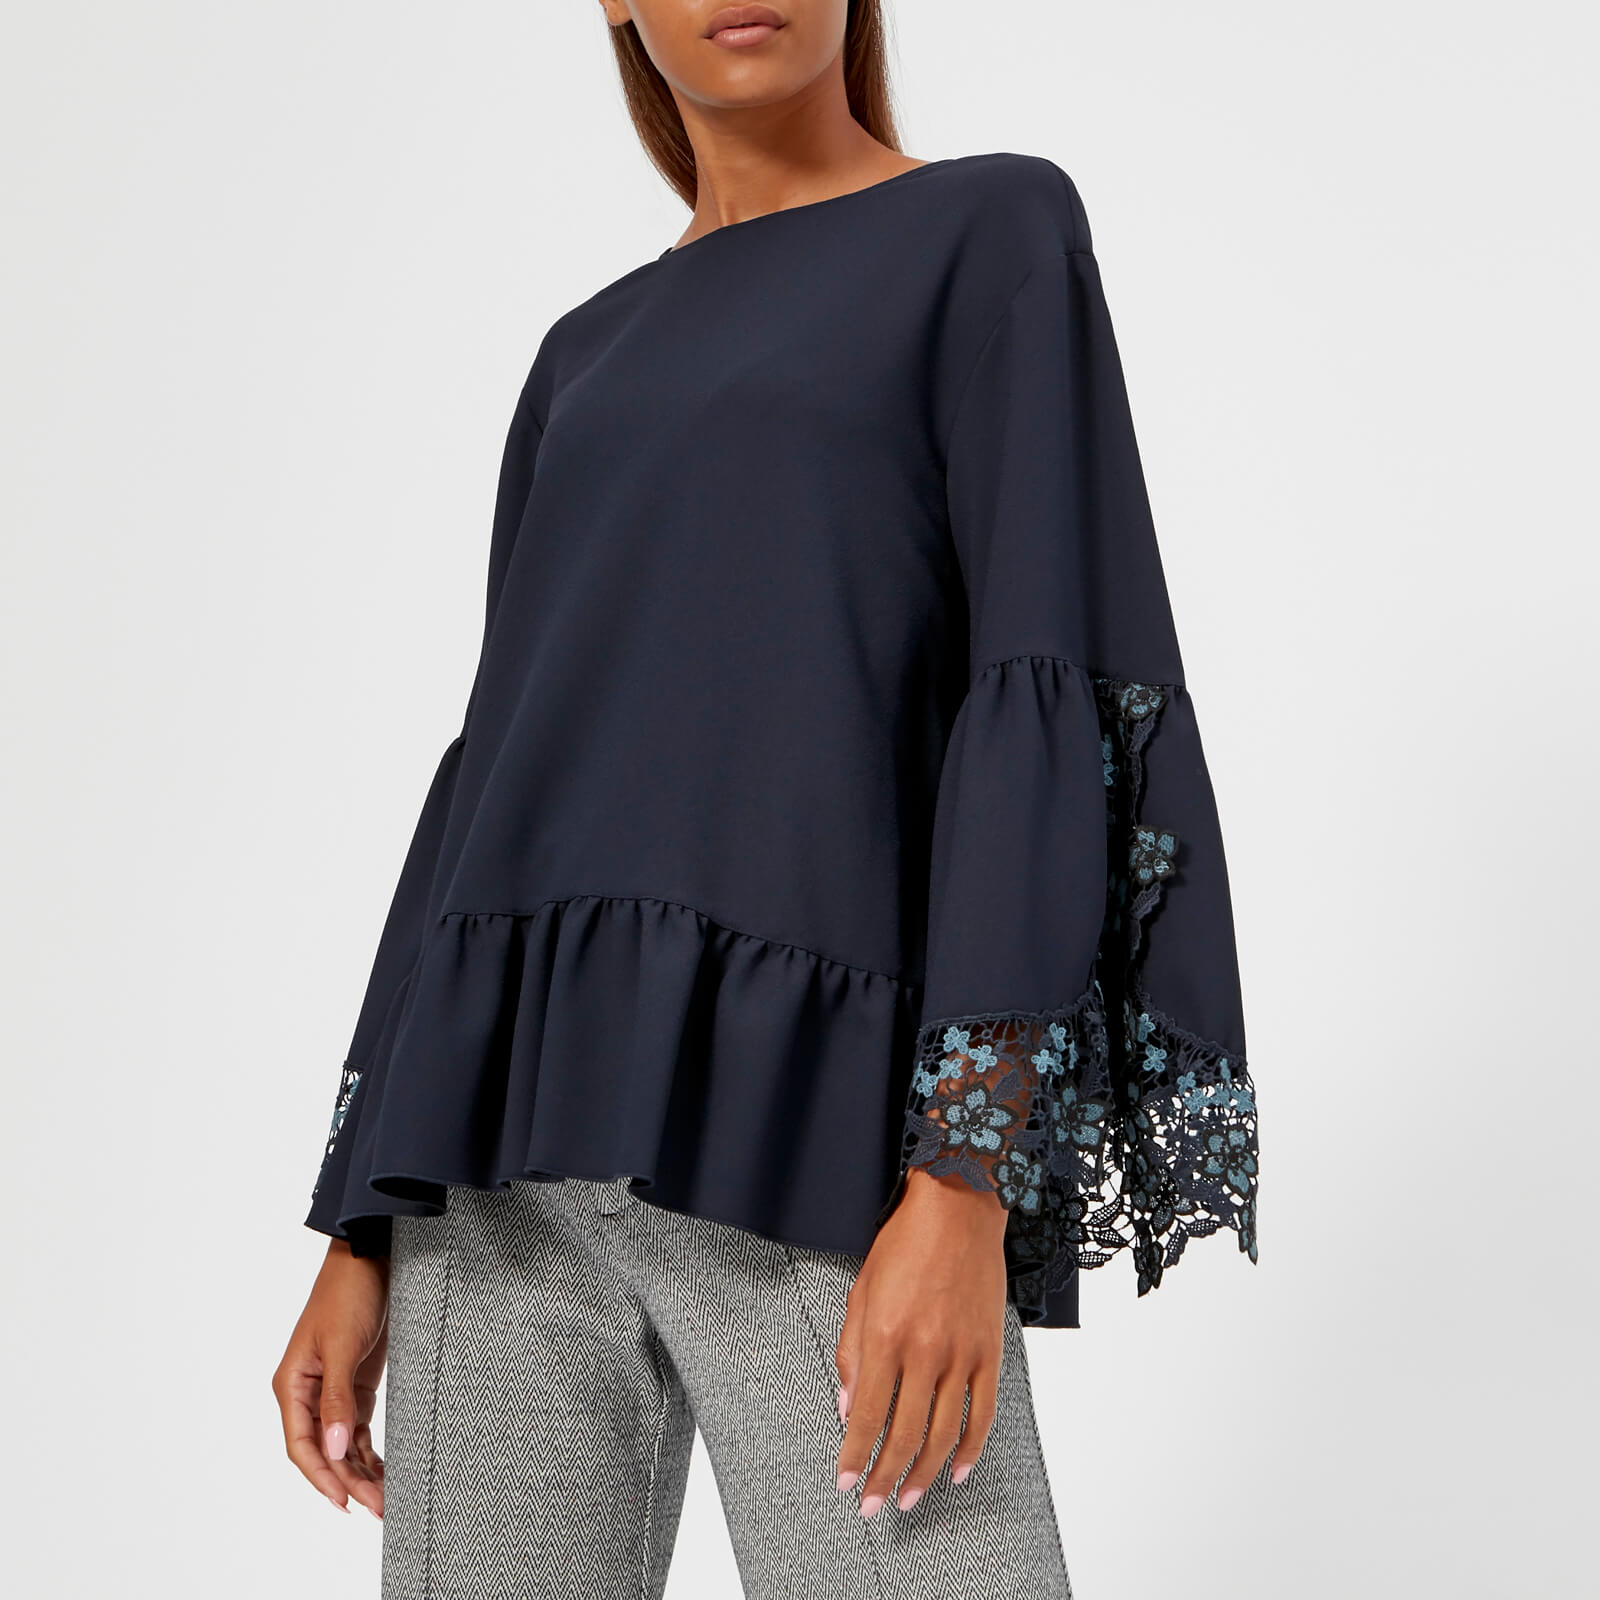 9cefdbd506cc86 See By Chloé Women's Lace Blouse - Dark Sapphire - Free UK Delivery over £50